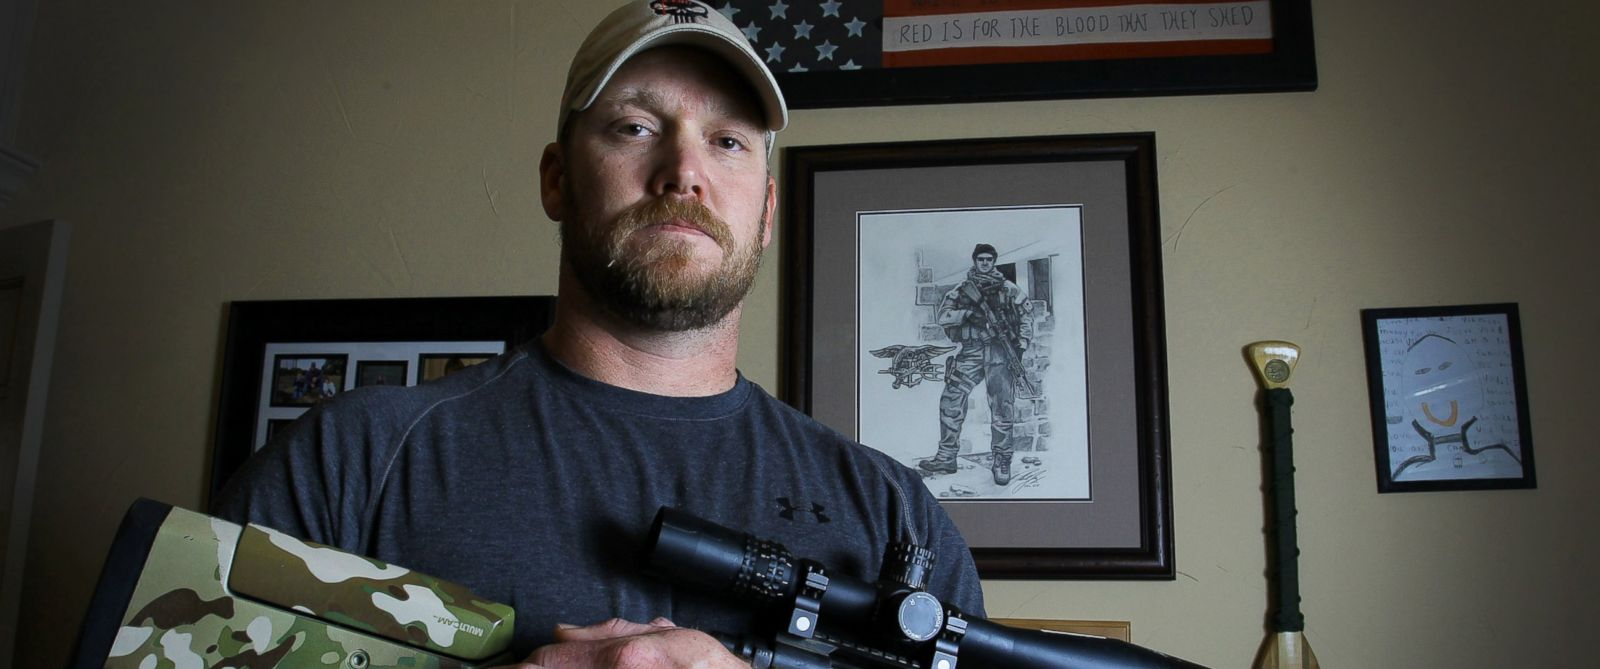 Ex-Marine Convicted Of Killing 'American Sniper' Faces Life In Prison